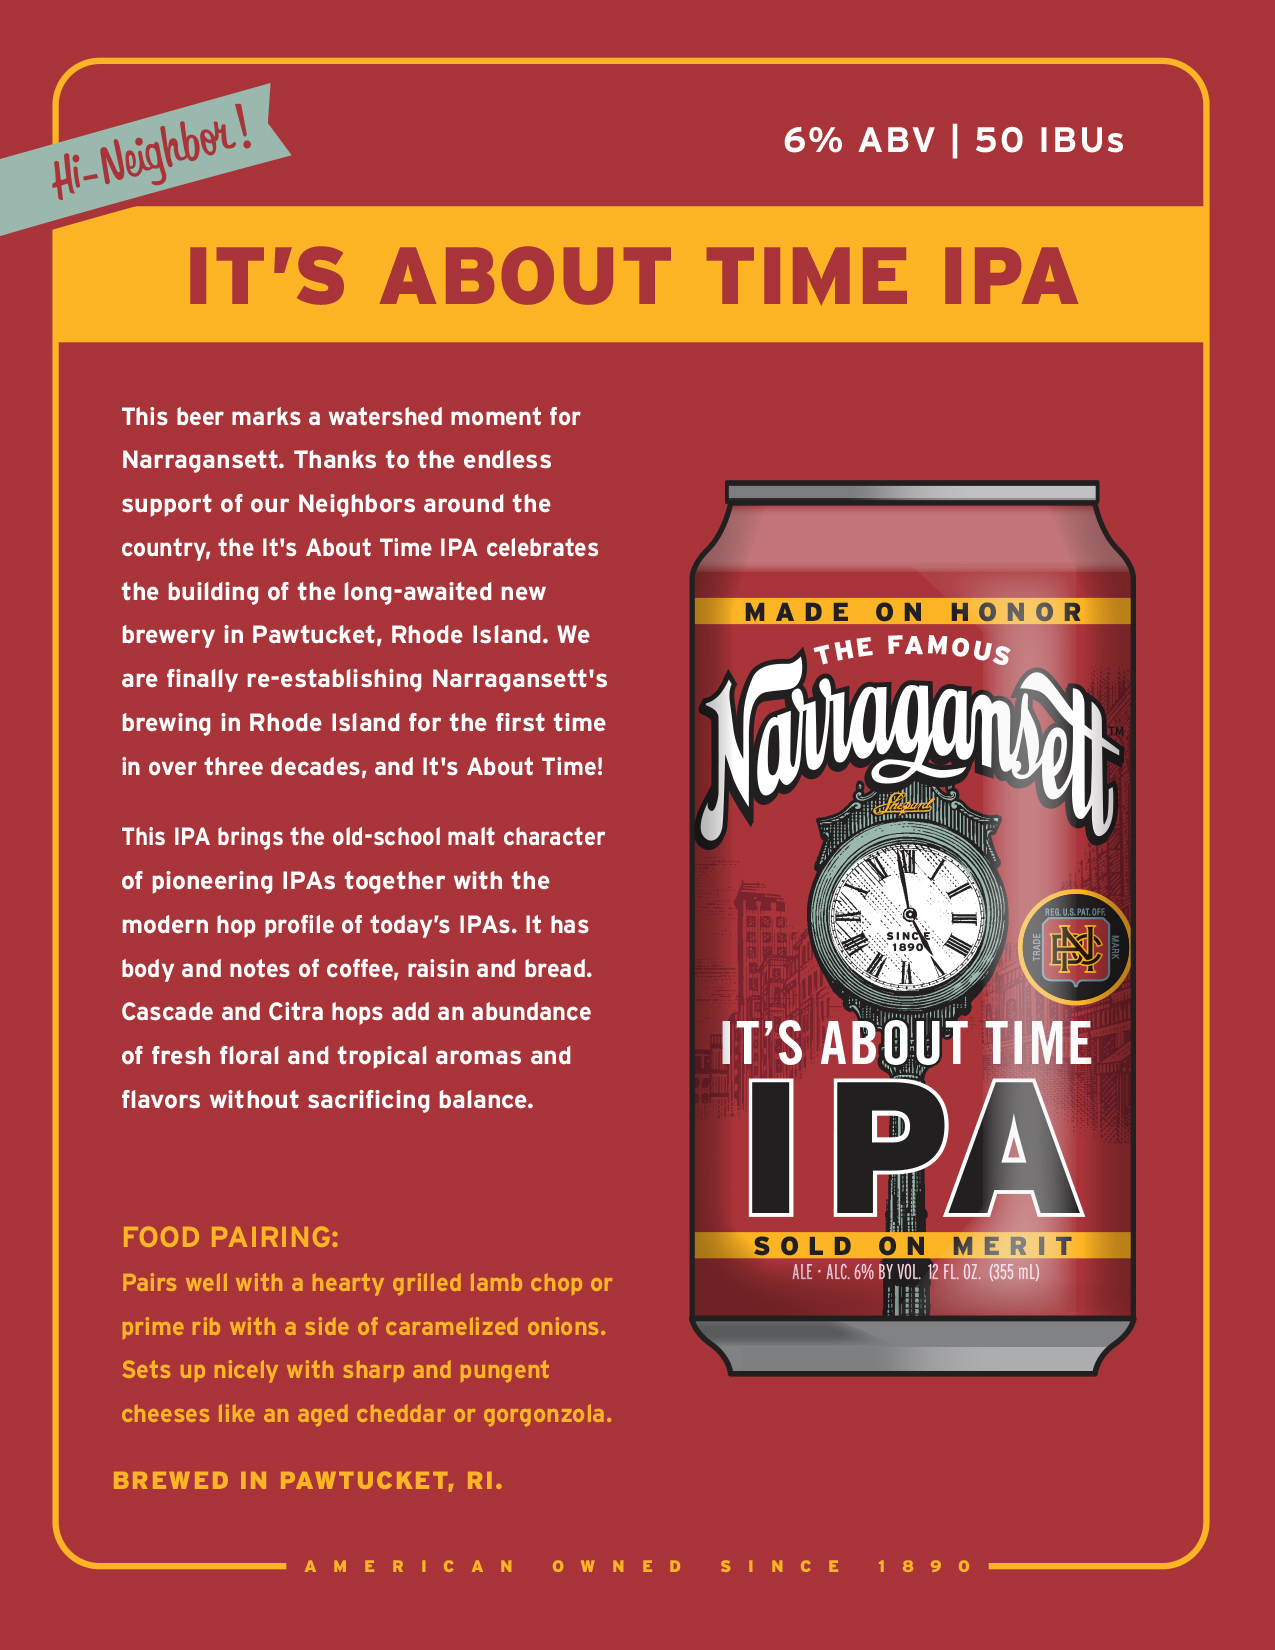 It's About Time IPA by Narragansett Beer